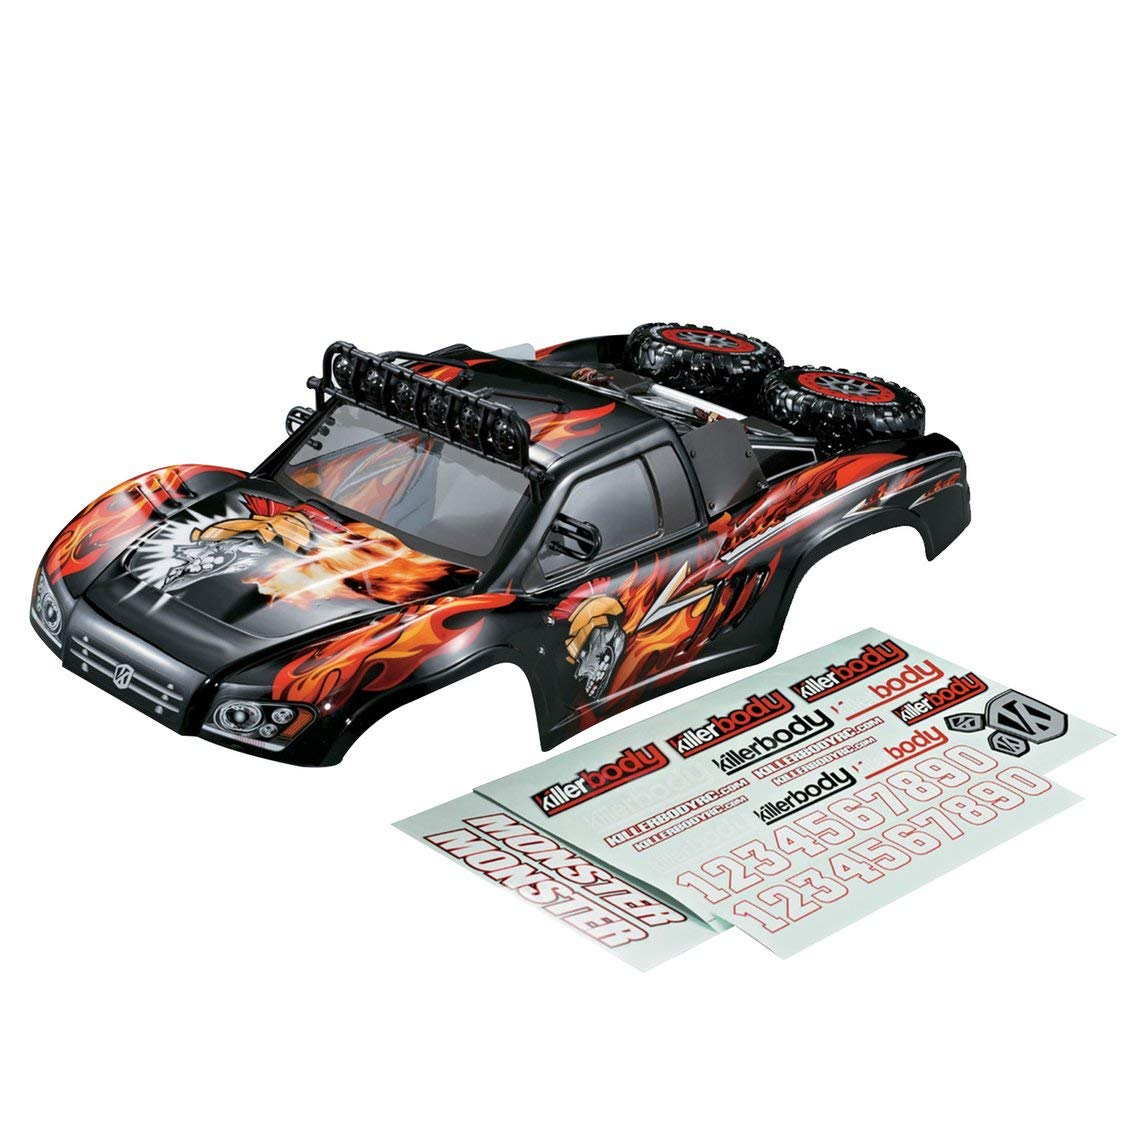 urjipstore Killerbody Short Course Truck Monster RC Car Body Shell Frame Kit for 1/10 Electric Touring Car RC Racing Car Shell DIY Parts